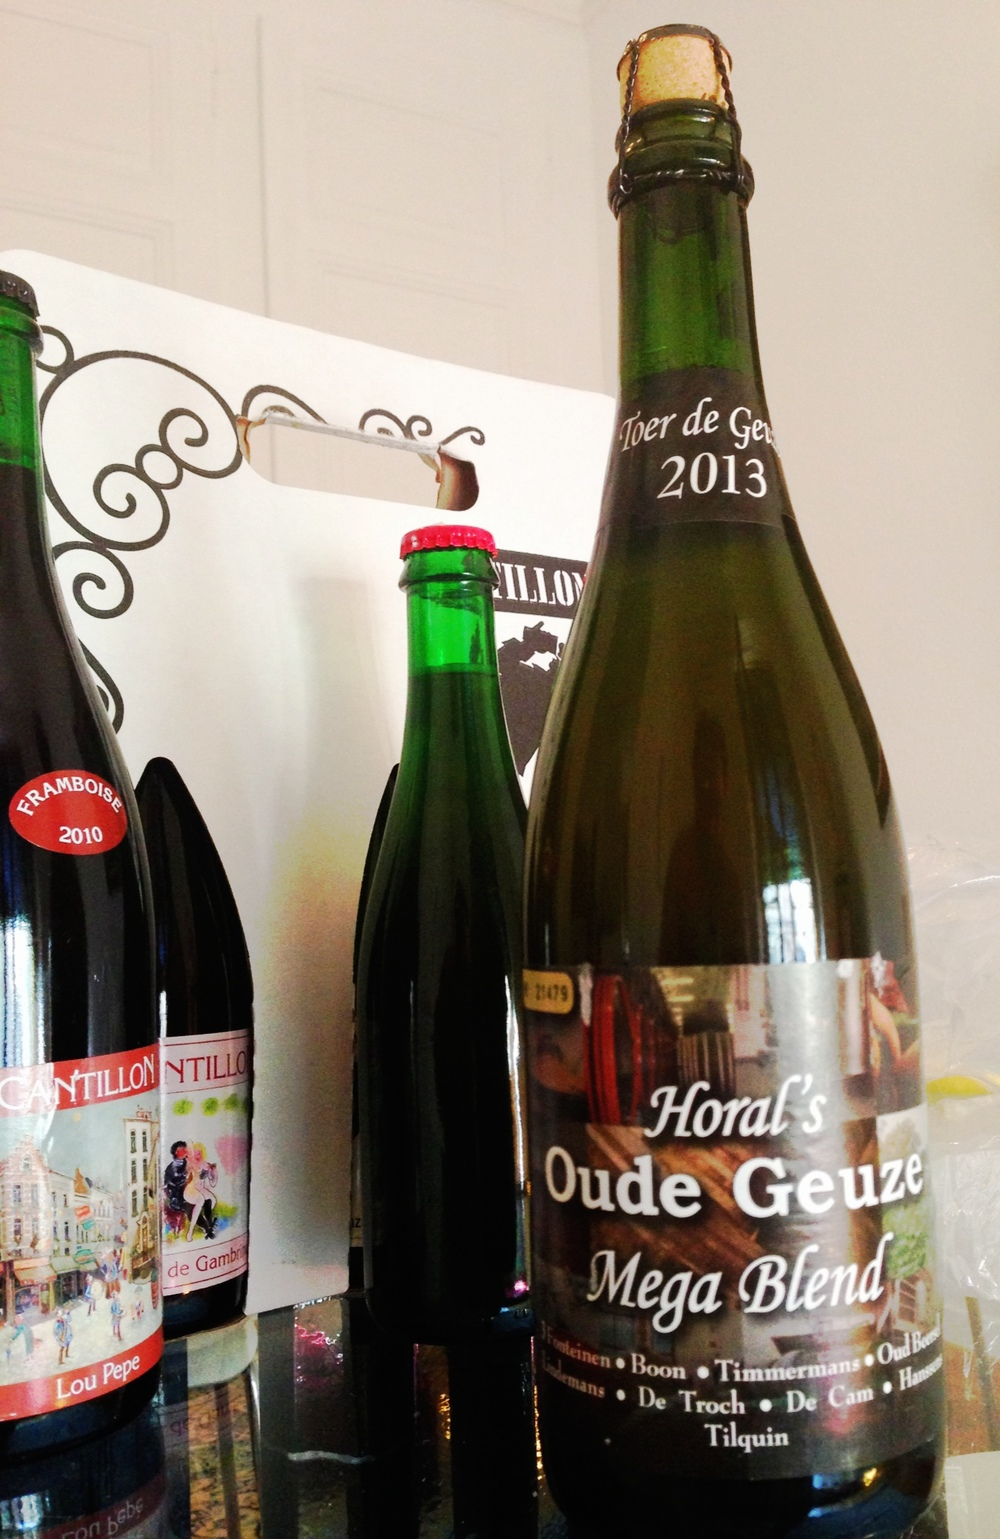 2013 Tour de Gueuze Horal's Oude Gueuze Mega Blend - bringing this one home!